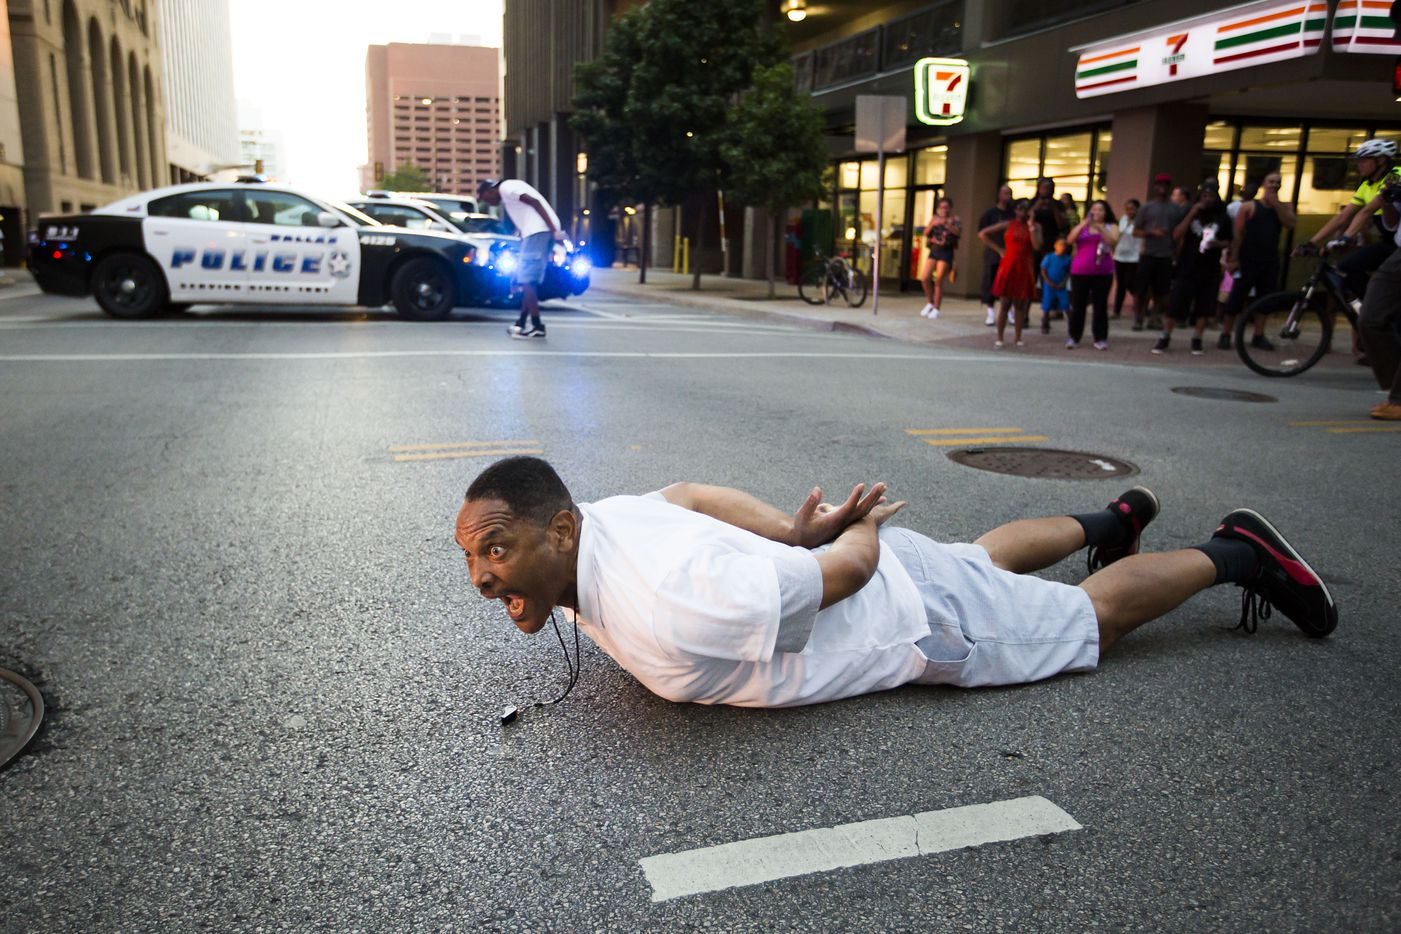 A protester who identified himself as Keng lies down in the middle of the intersection of Commerce and Field streets in front of police during the Black Lives Matter march. (Smiley N. Pool/Staff Photographer)